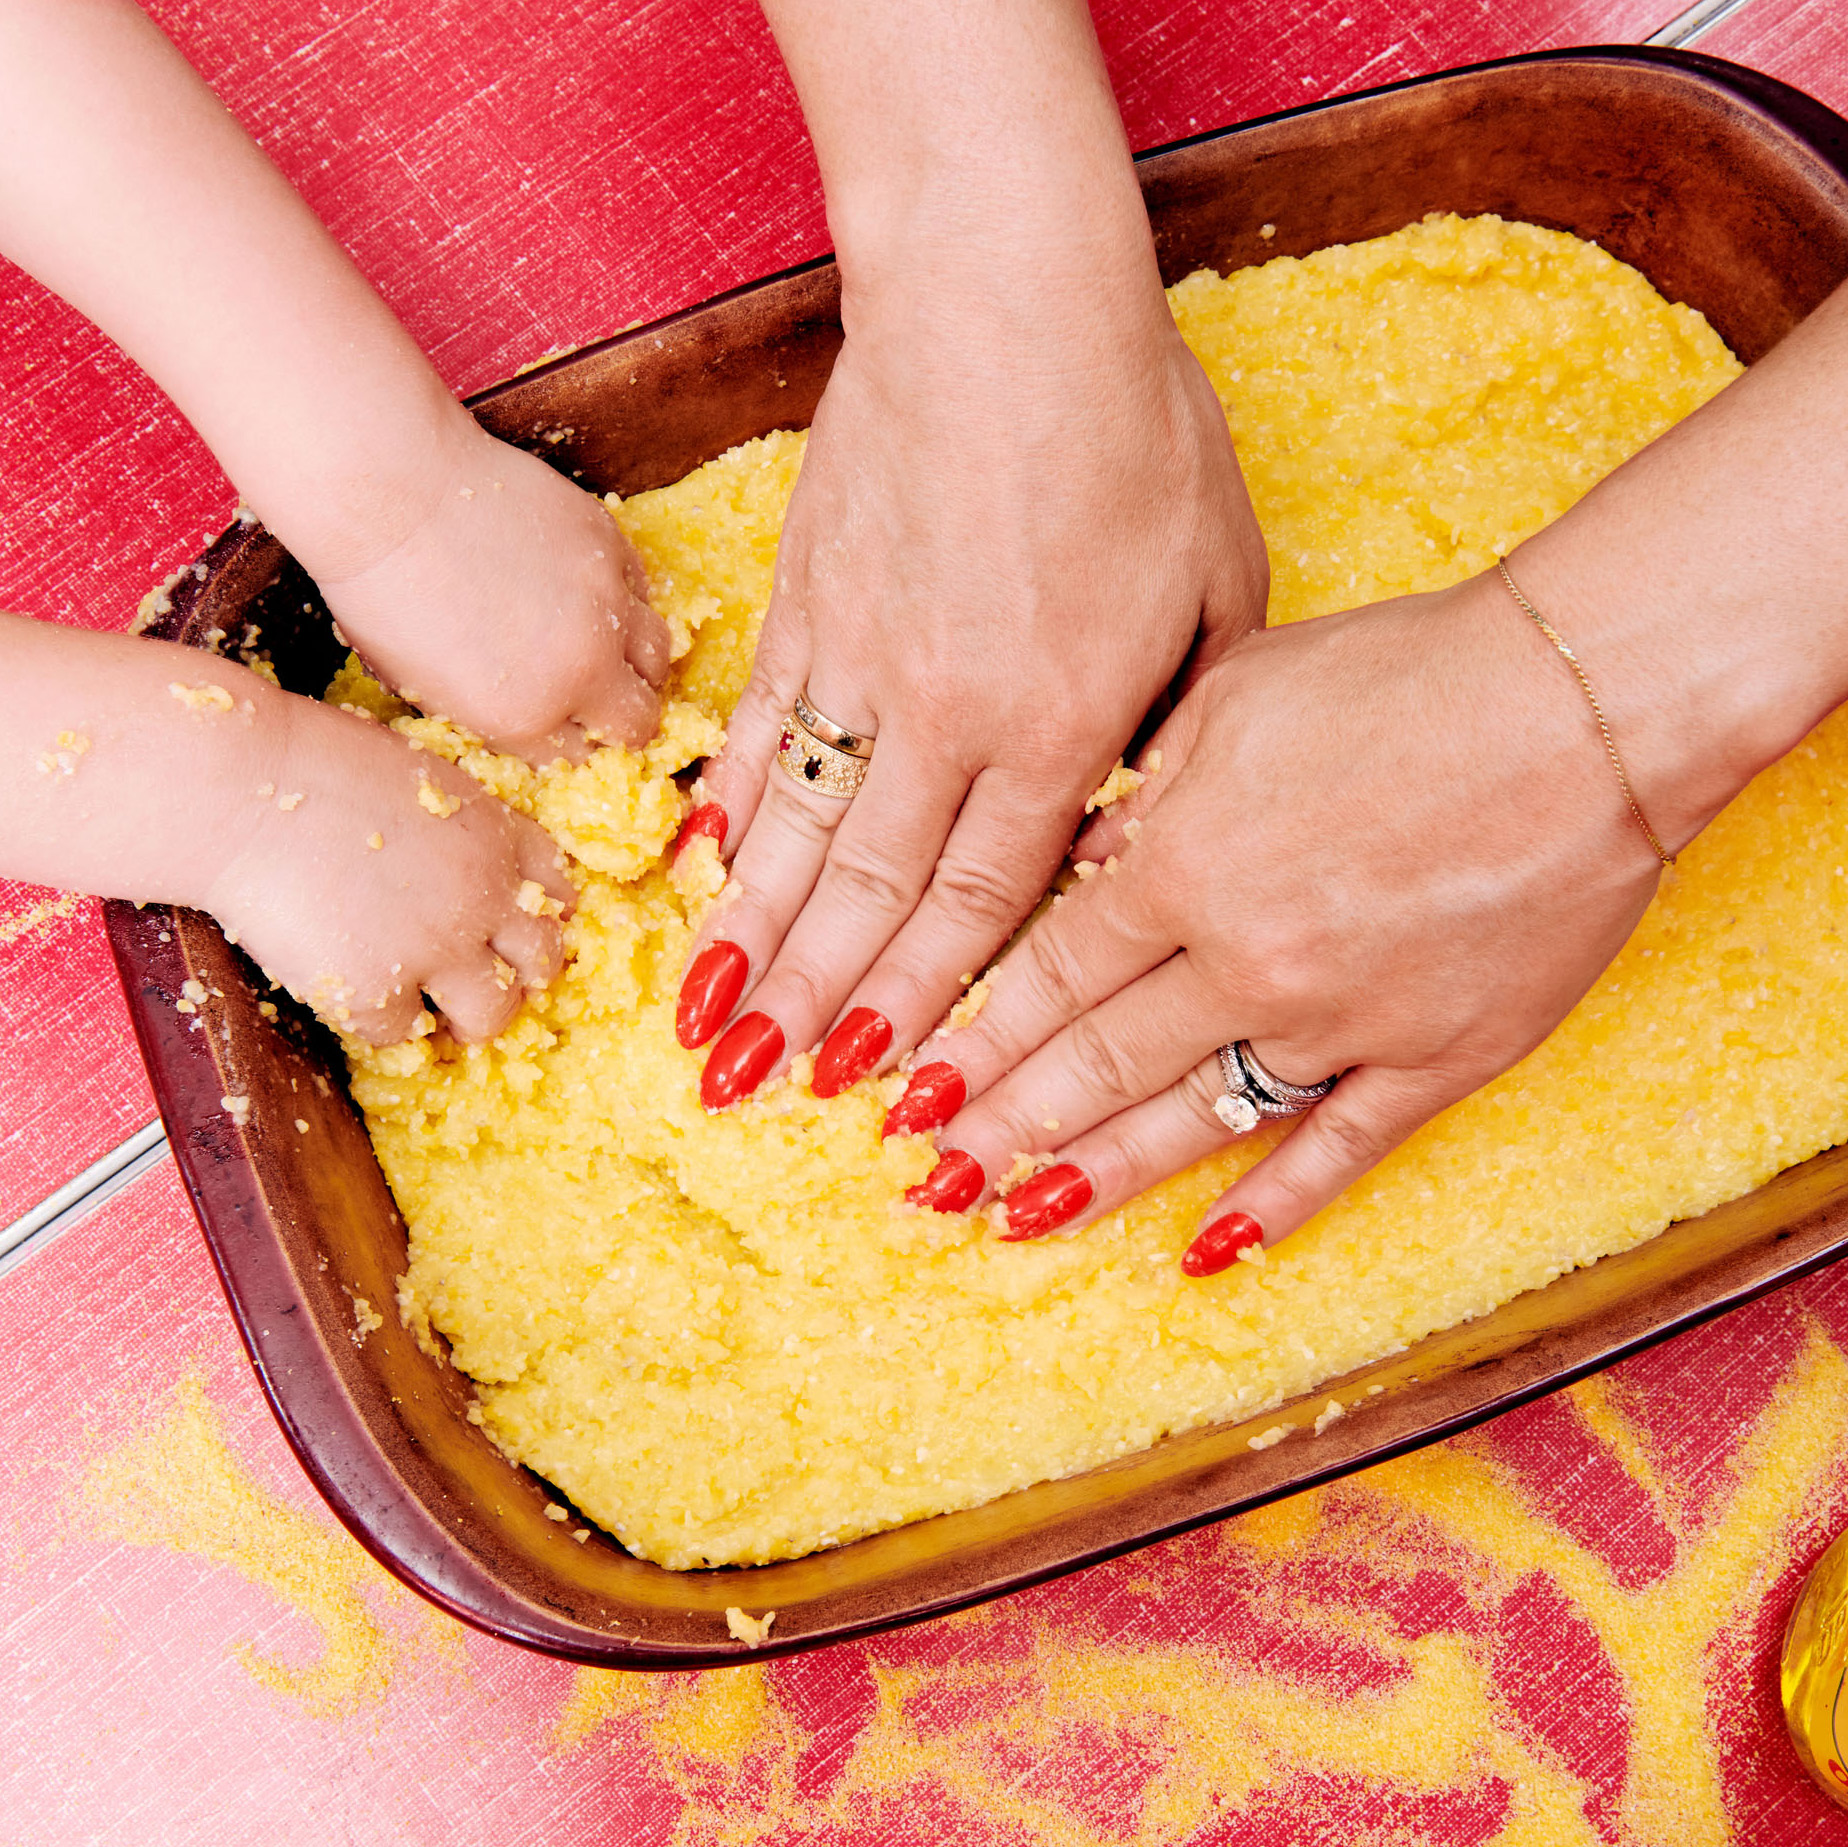 all hand in polenta making